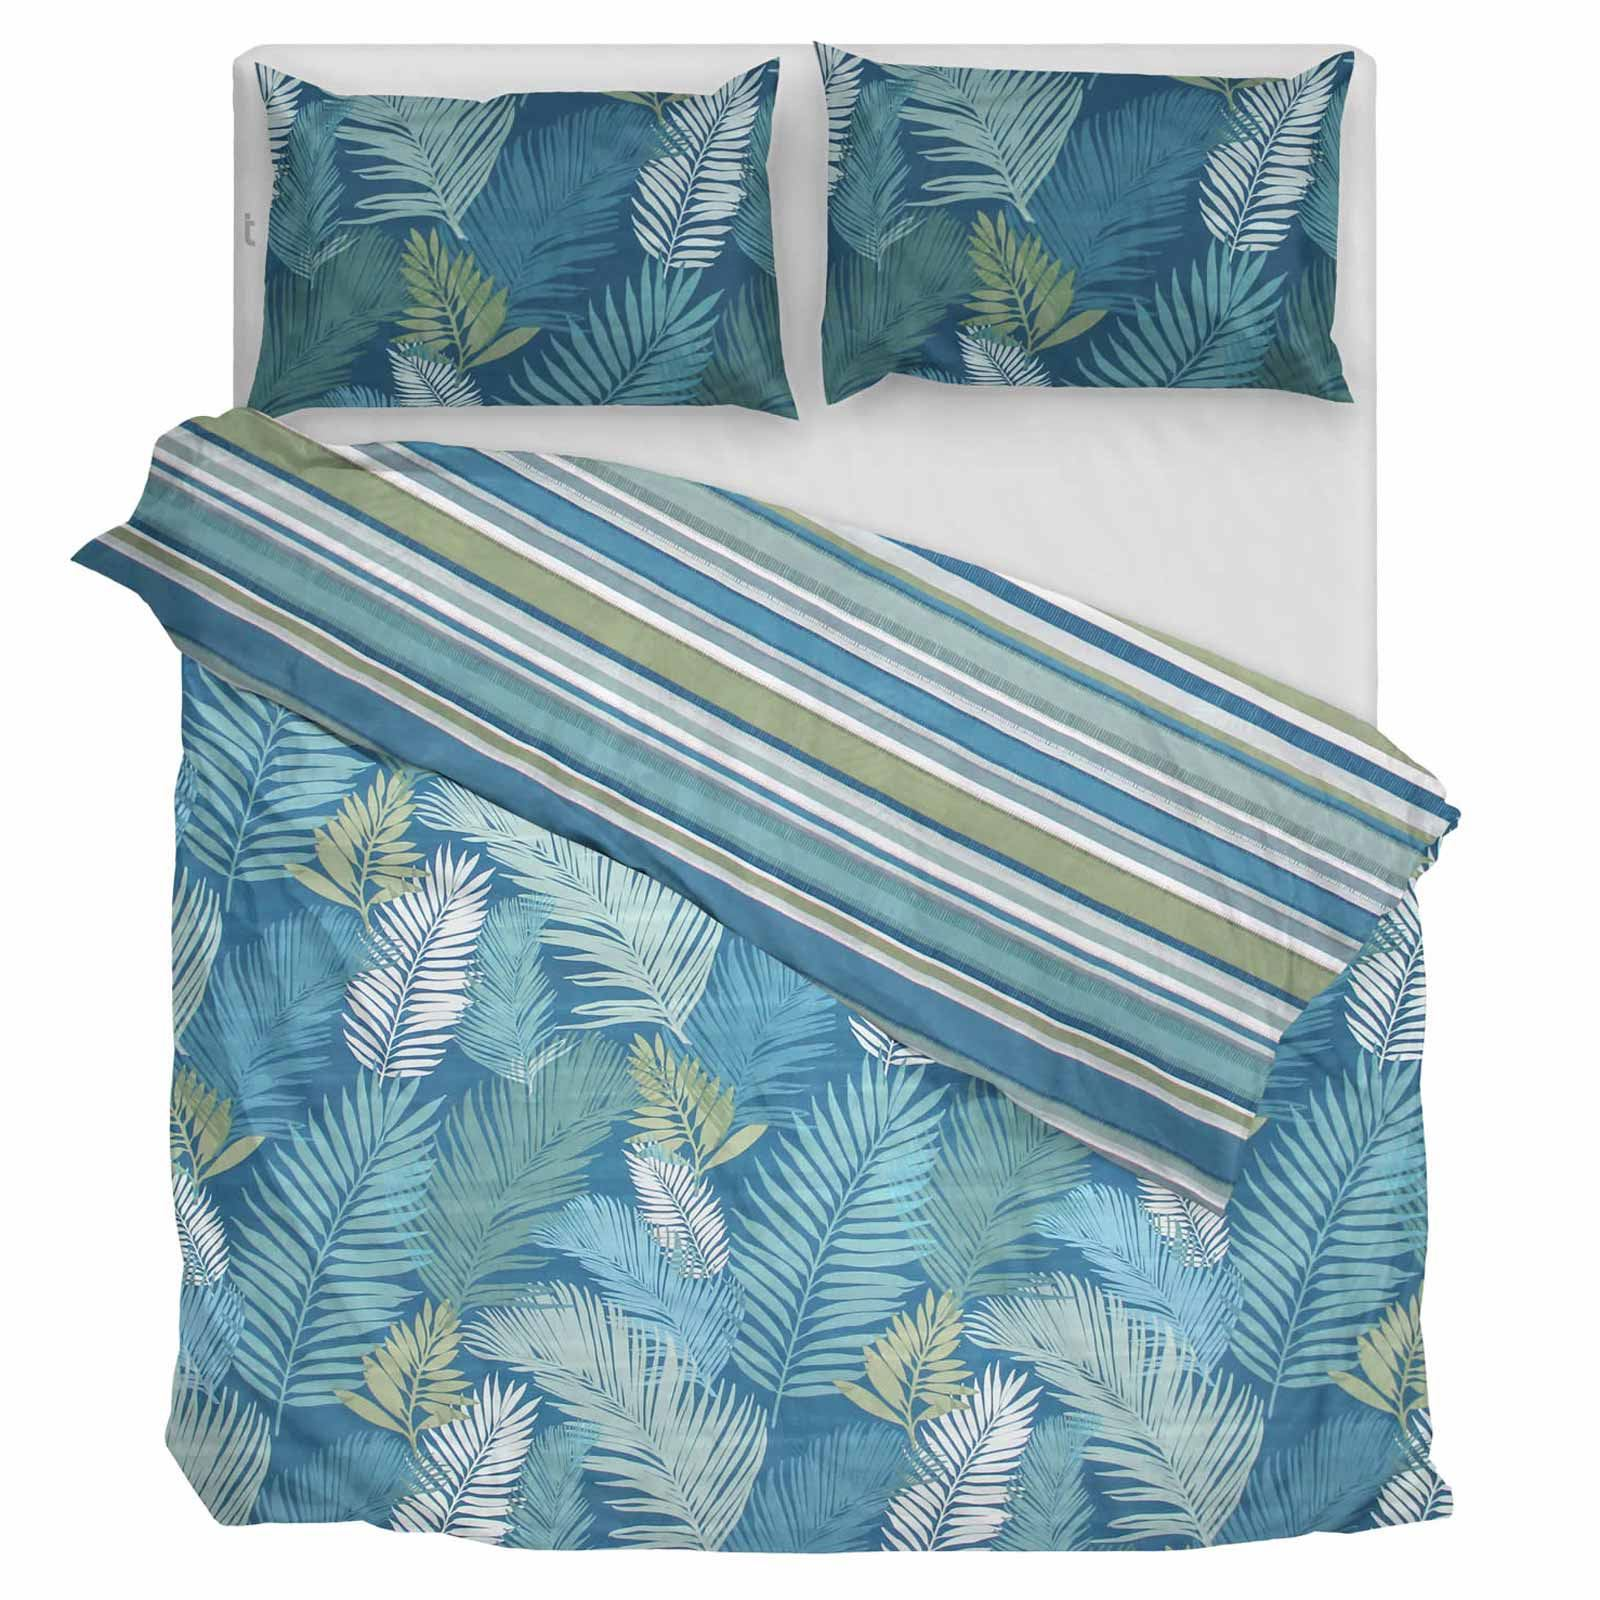 Teal Duvet Cover Navy Blue Quilt Covers Bedding Set Single